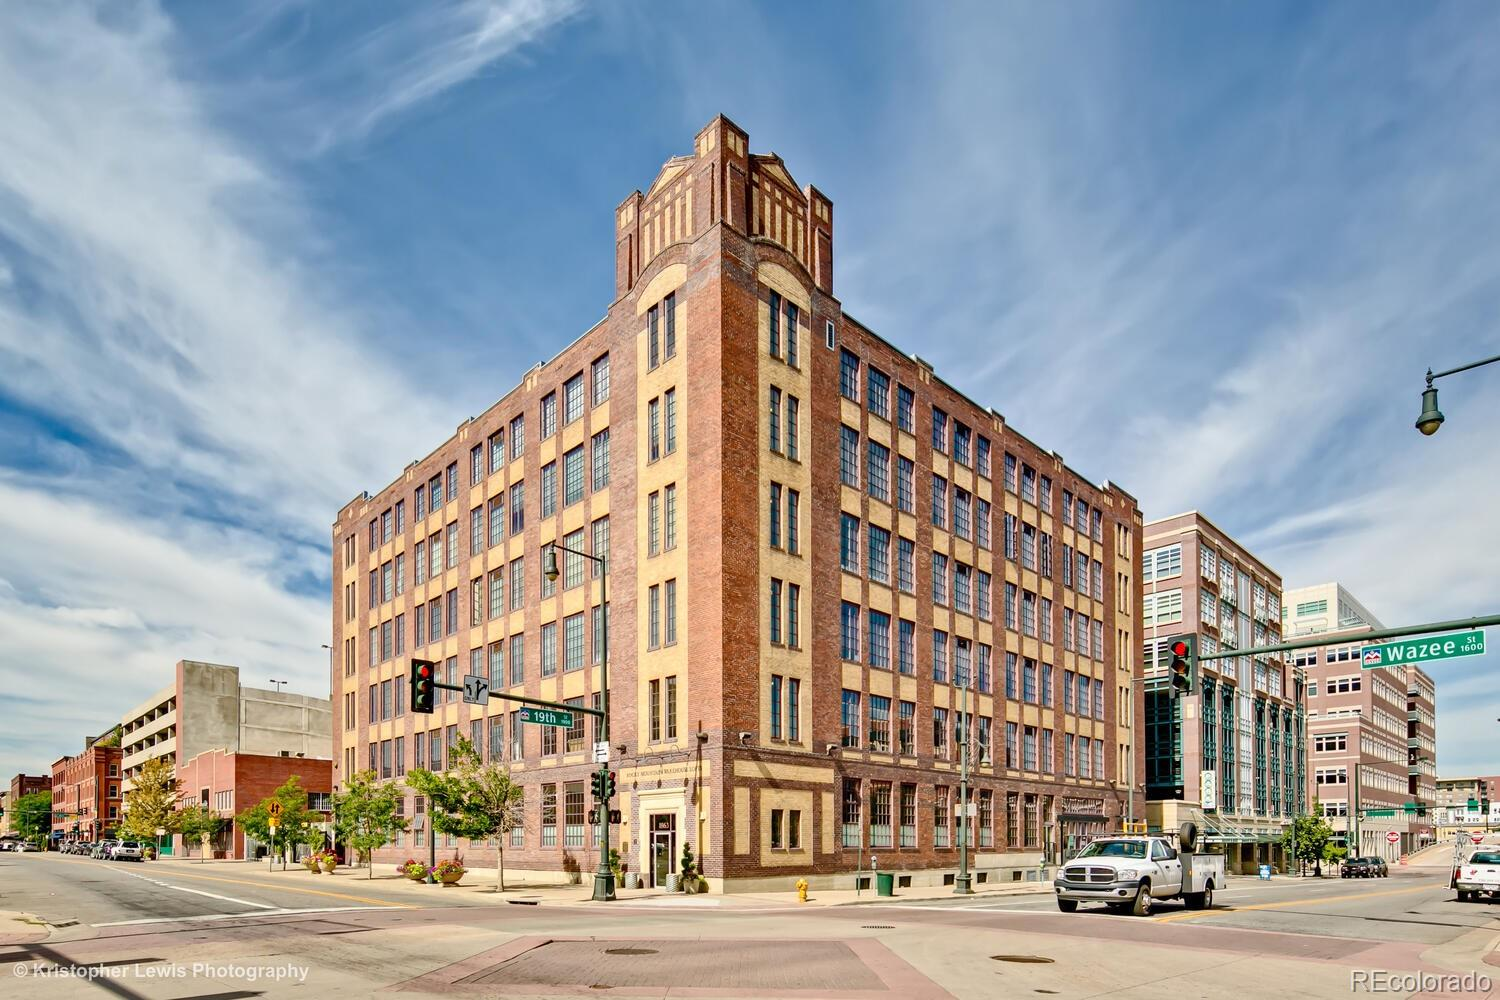 A charming industrial-style penthouse in the historic Rocky Mountain Warehouse Lofts building & LoDo neighborhood. This home features many architectural details – polychromatic brick walls along the dining & living room, exposed concrete pillars and ductwork throughout, an open and bright floor plan with many windows, tall ceilings, & views of the city, custom kitchen cabinets & floating bathroom cabinets, & intricate tile patterns. The open floor plan has hardwood floors throughout and allows for many different layout options - with enough space for an office, home gym, etc. A spacious kitchen with induction cooktop, quartz counters & island seating, soft-close cabinets, stainless steel appliances, & built-in coffee machine. A large master bedroom with a spa-like bathroom with a spacious shower that has multiple shower heads including a rain-style & handheld wand, and a jet bath tub. In unit washer and dryer. Enjoy entertaining on the large covered balcony with outdoor grill and plant herbs or flowers in the raised garden beds. Tandem parking spots in the secure underground parking garage that also has a storage unit. In the heart of downtown - live steps away from Coors Field, Dairy Block, McGregor Square, Union Station, and all of the LoDo shops and restaurants. Live a part of Denver's history – the building was built in 1930 by influential architect Montana Fallis and was originally used as one of Denver's first merchandise marts. To view a virtual 3D Tour Click Here: https://my.matterport.com/show/?m=uzWdHCyb7fU